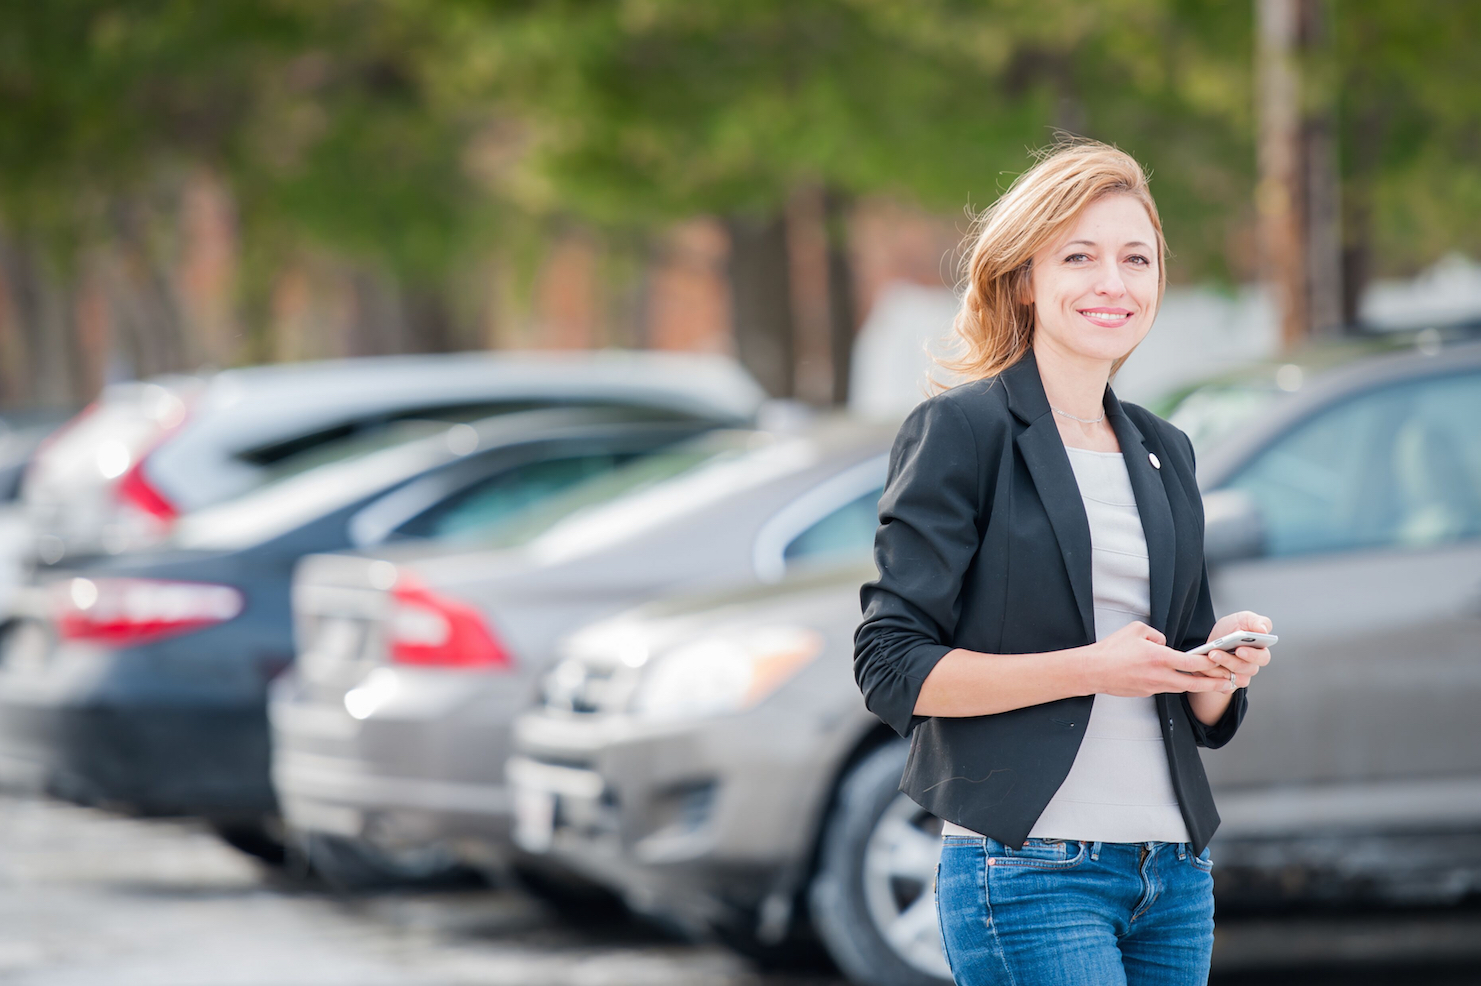 Xconomy Insurify Races Into Car Insurance Search With Online